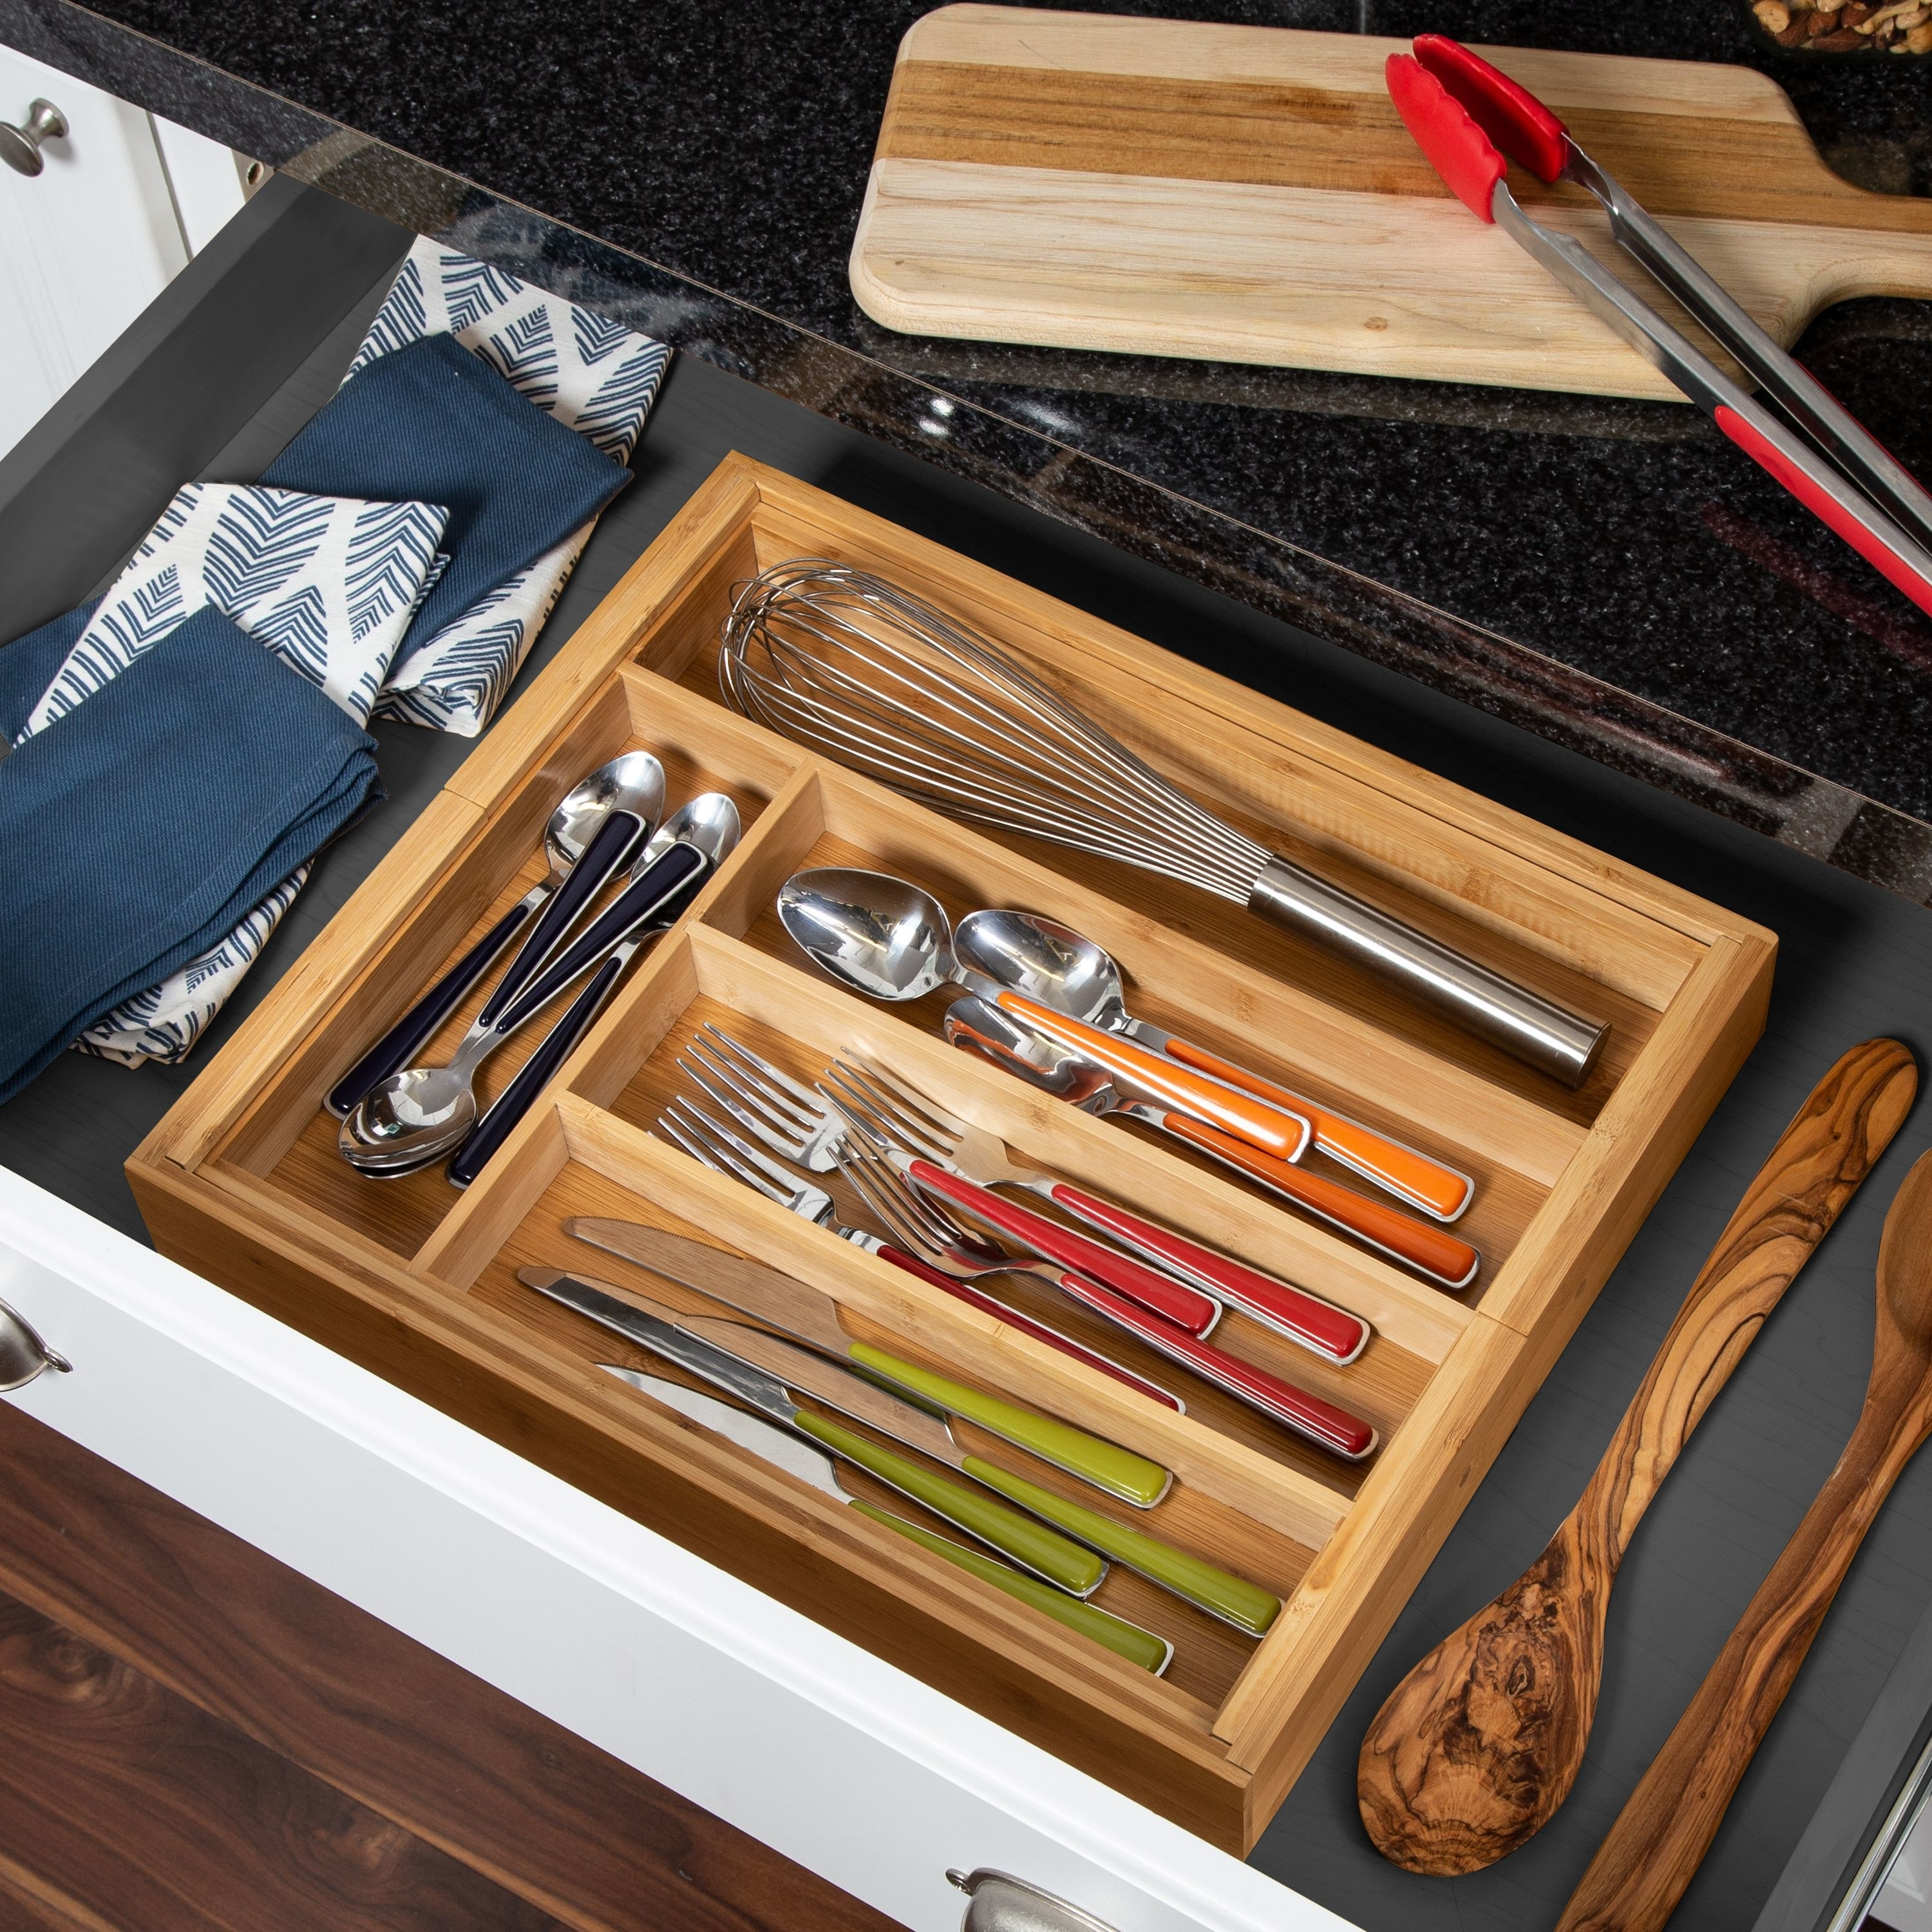 bamboo kitchen drawer organizer inside a drawer with silverware and utensils inside